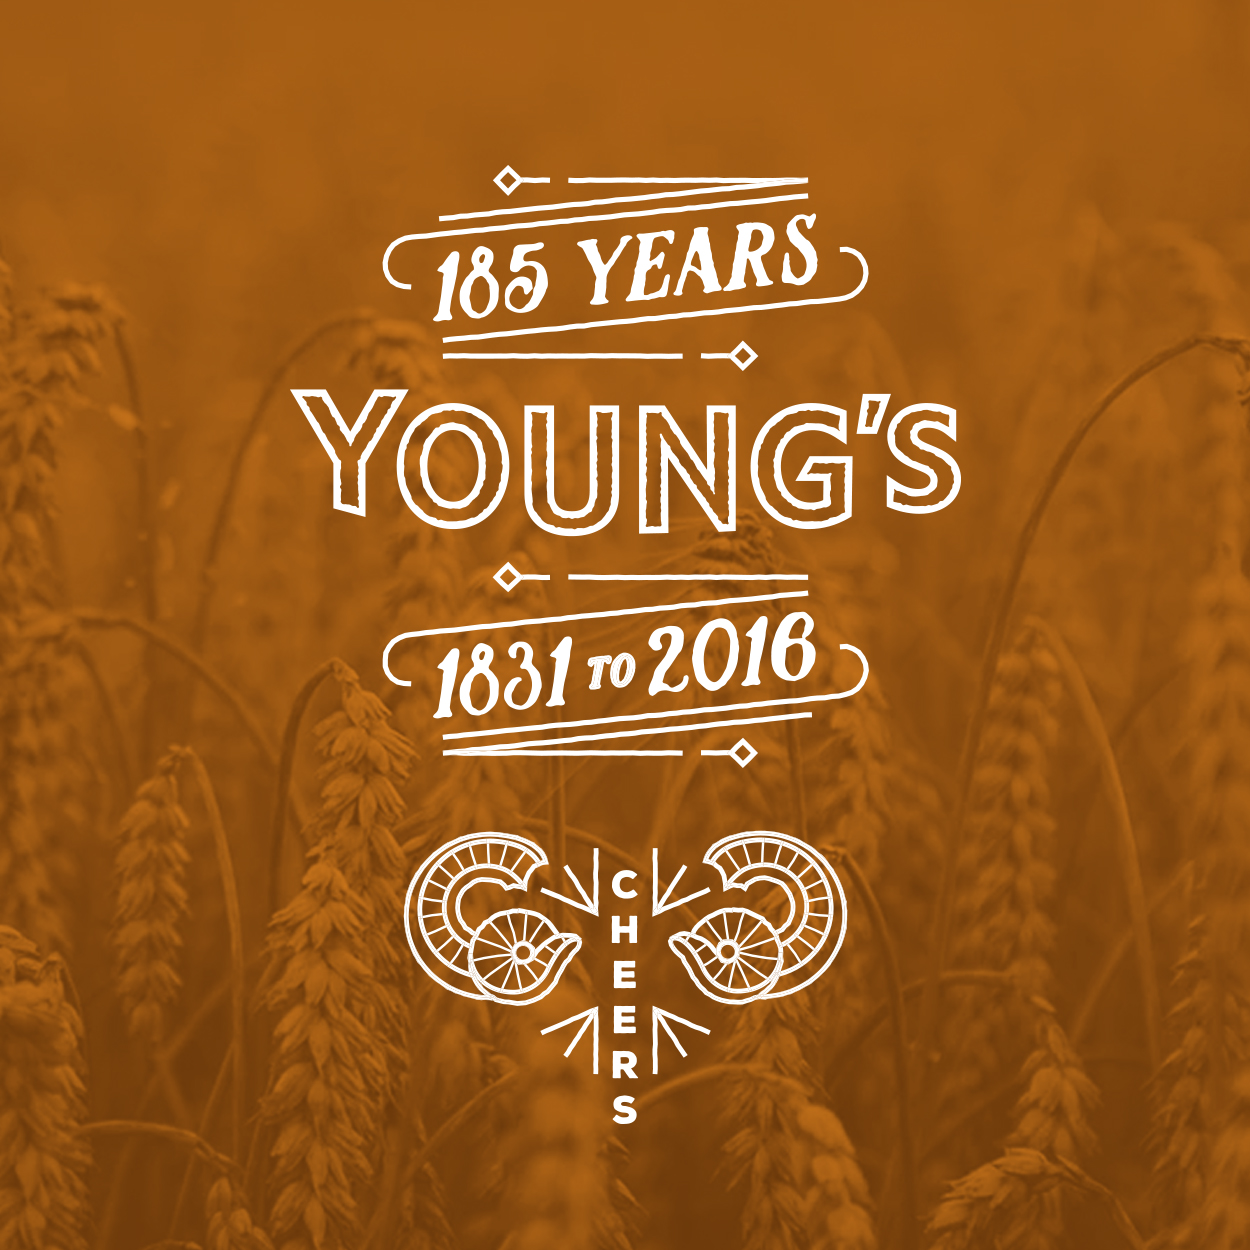 Young's Day commemorative logo overlaid on hops image